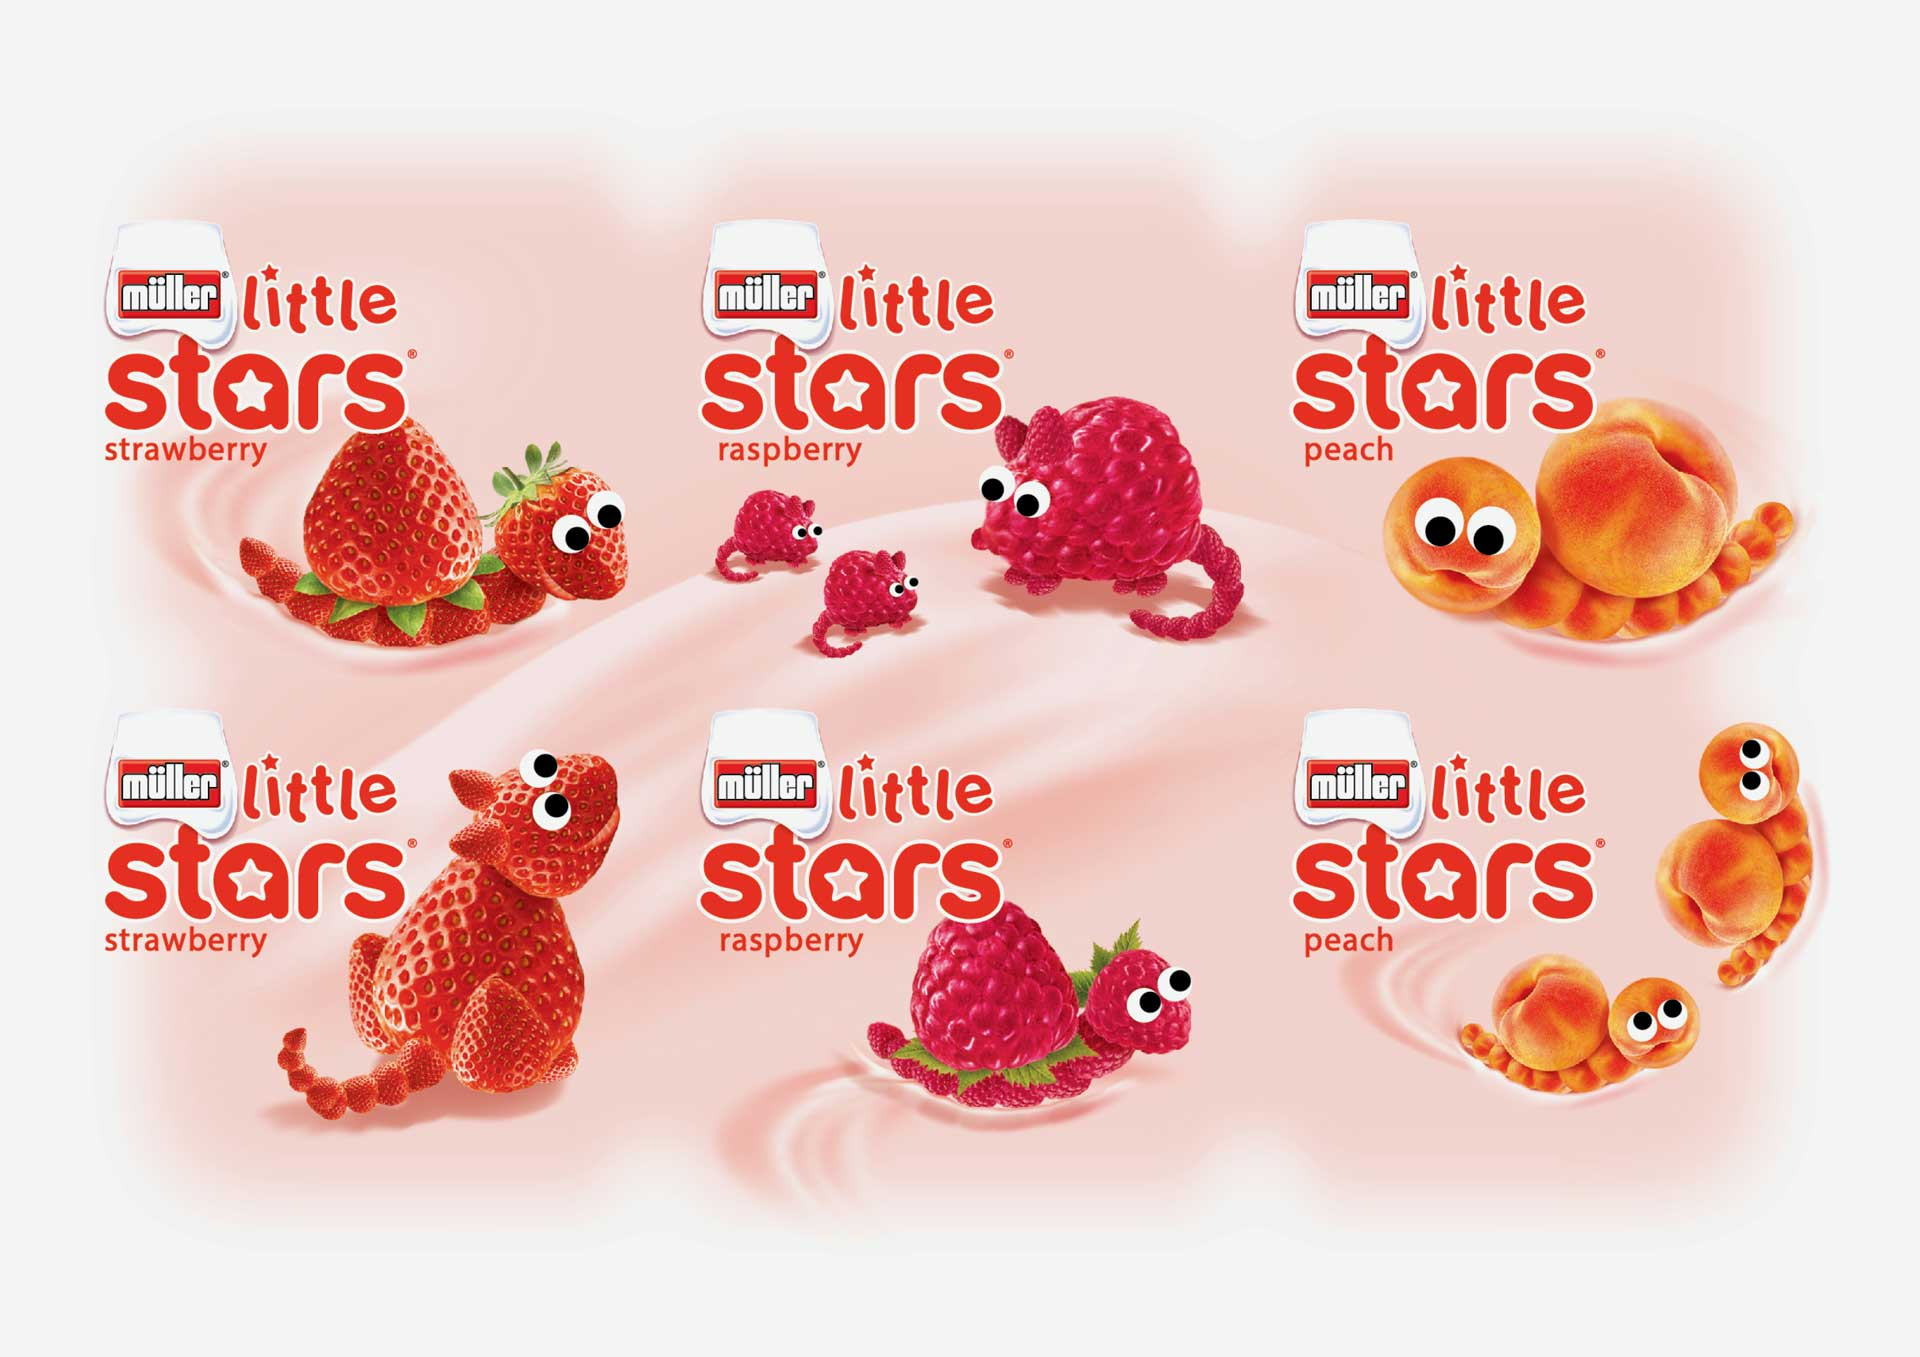 muller-little-stars-packaging-4